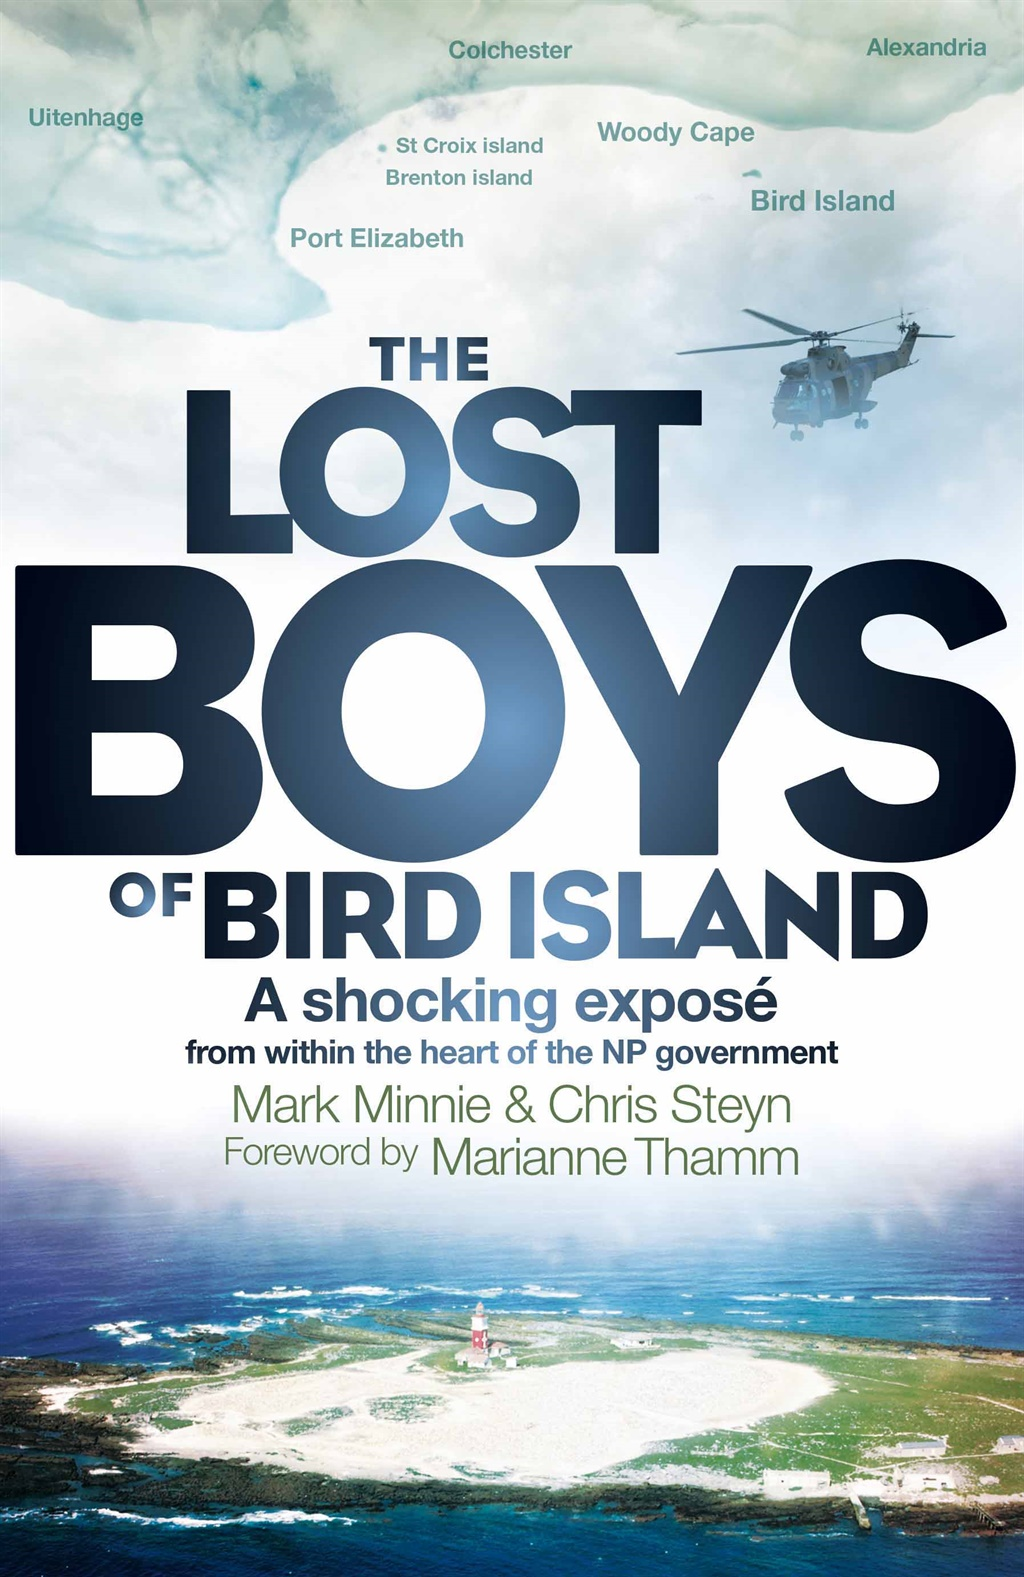 The Lost Boys of Bird Island by Tafelberg Publishers.